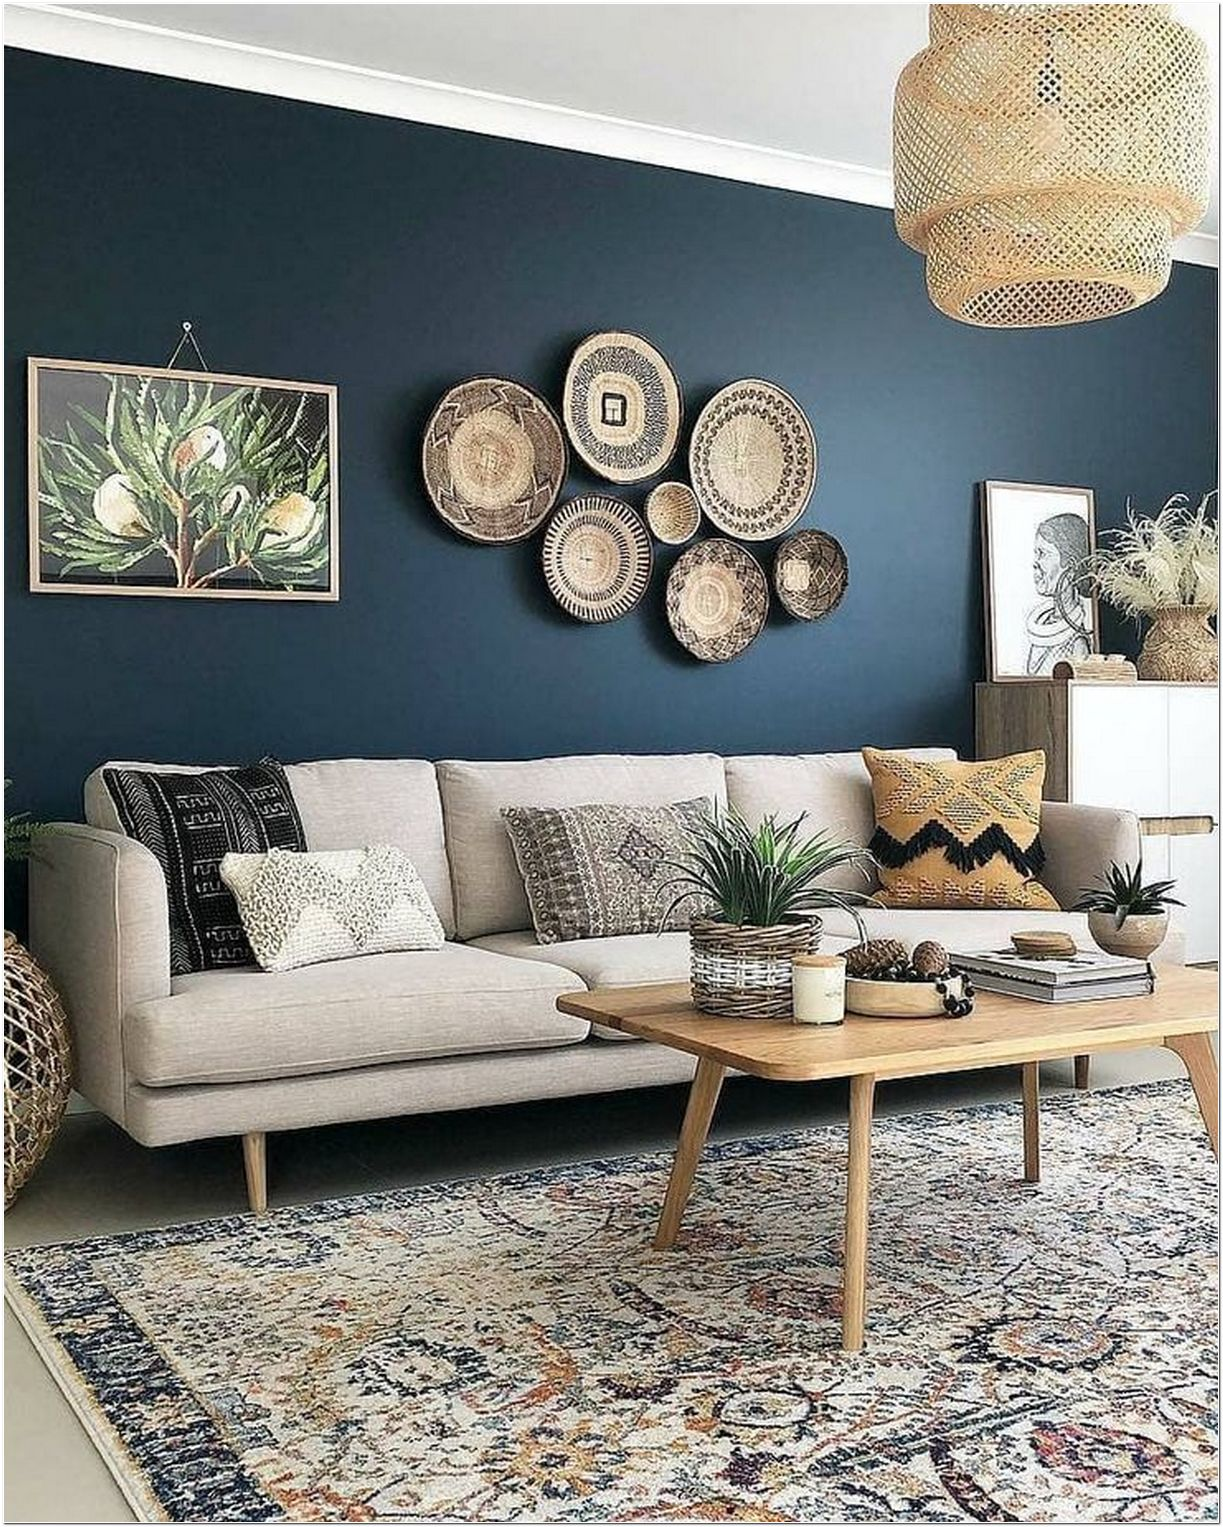 65 We've Spent All Day Dreaming About These Living Room Wall Decor Ideas